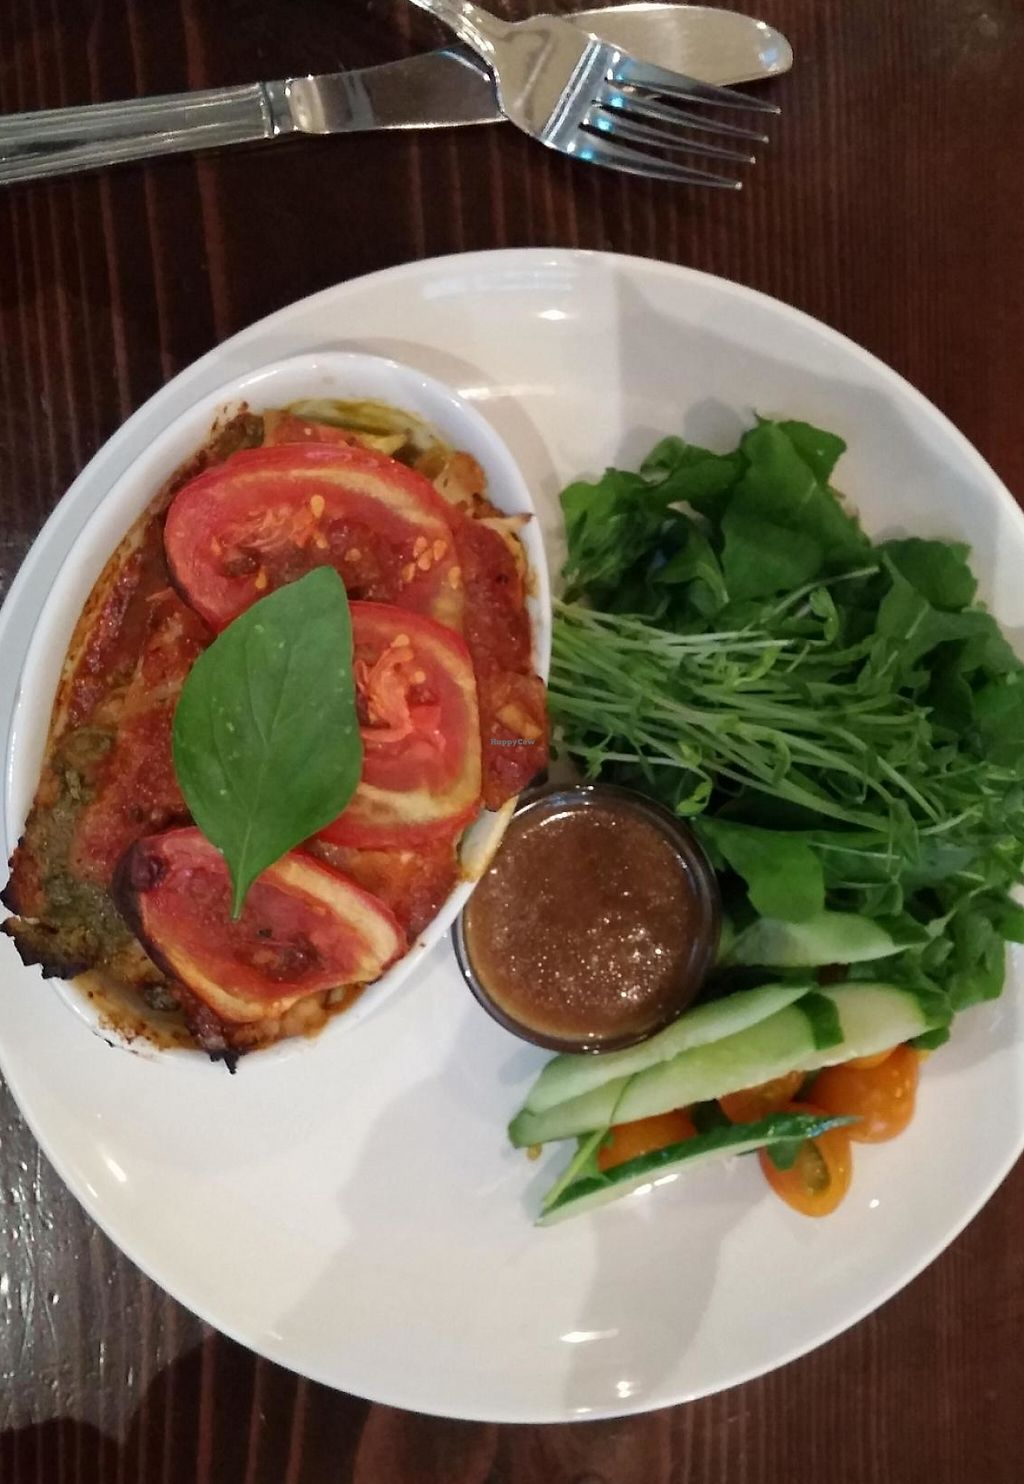 "Photo of be love  by <a href=""/members/profile/elizabet"">elizabet</a> <br/>Heirloom tomato, pesto, and cashew cheese lasagna with arugula salad <br/> July 21, 2015  - <a href='/contact/abuse/image/42461/230776'>Report</a>"